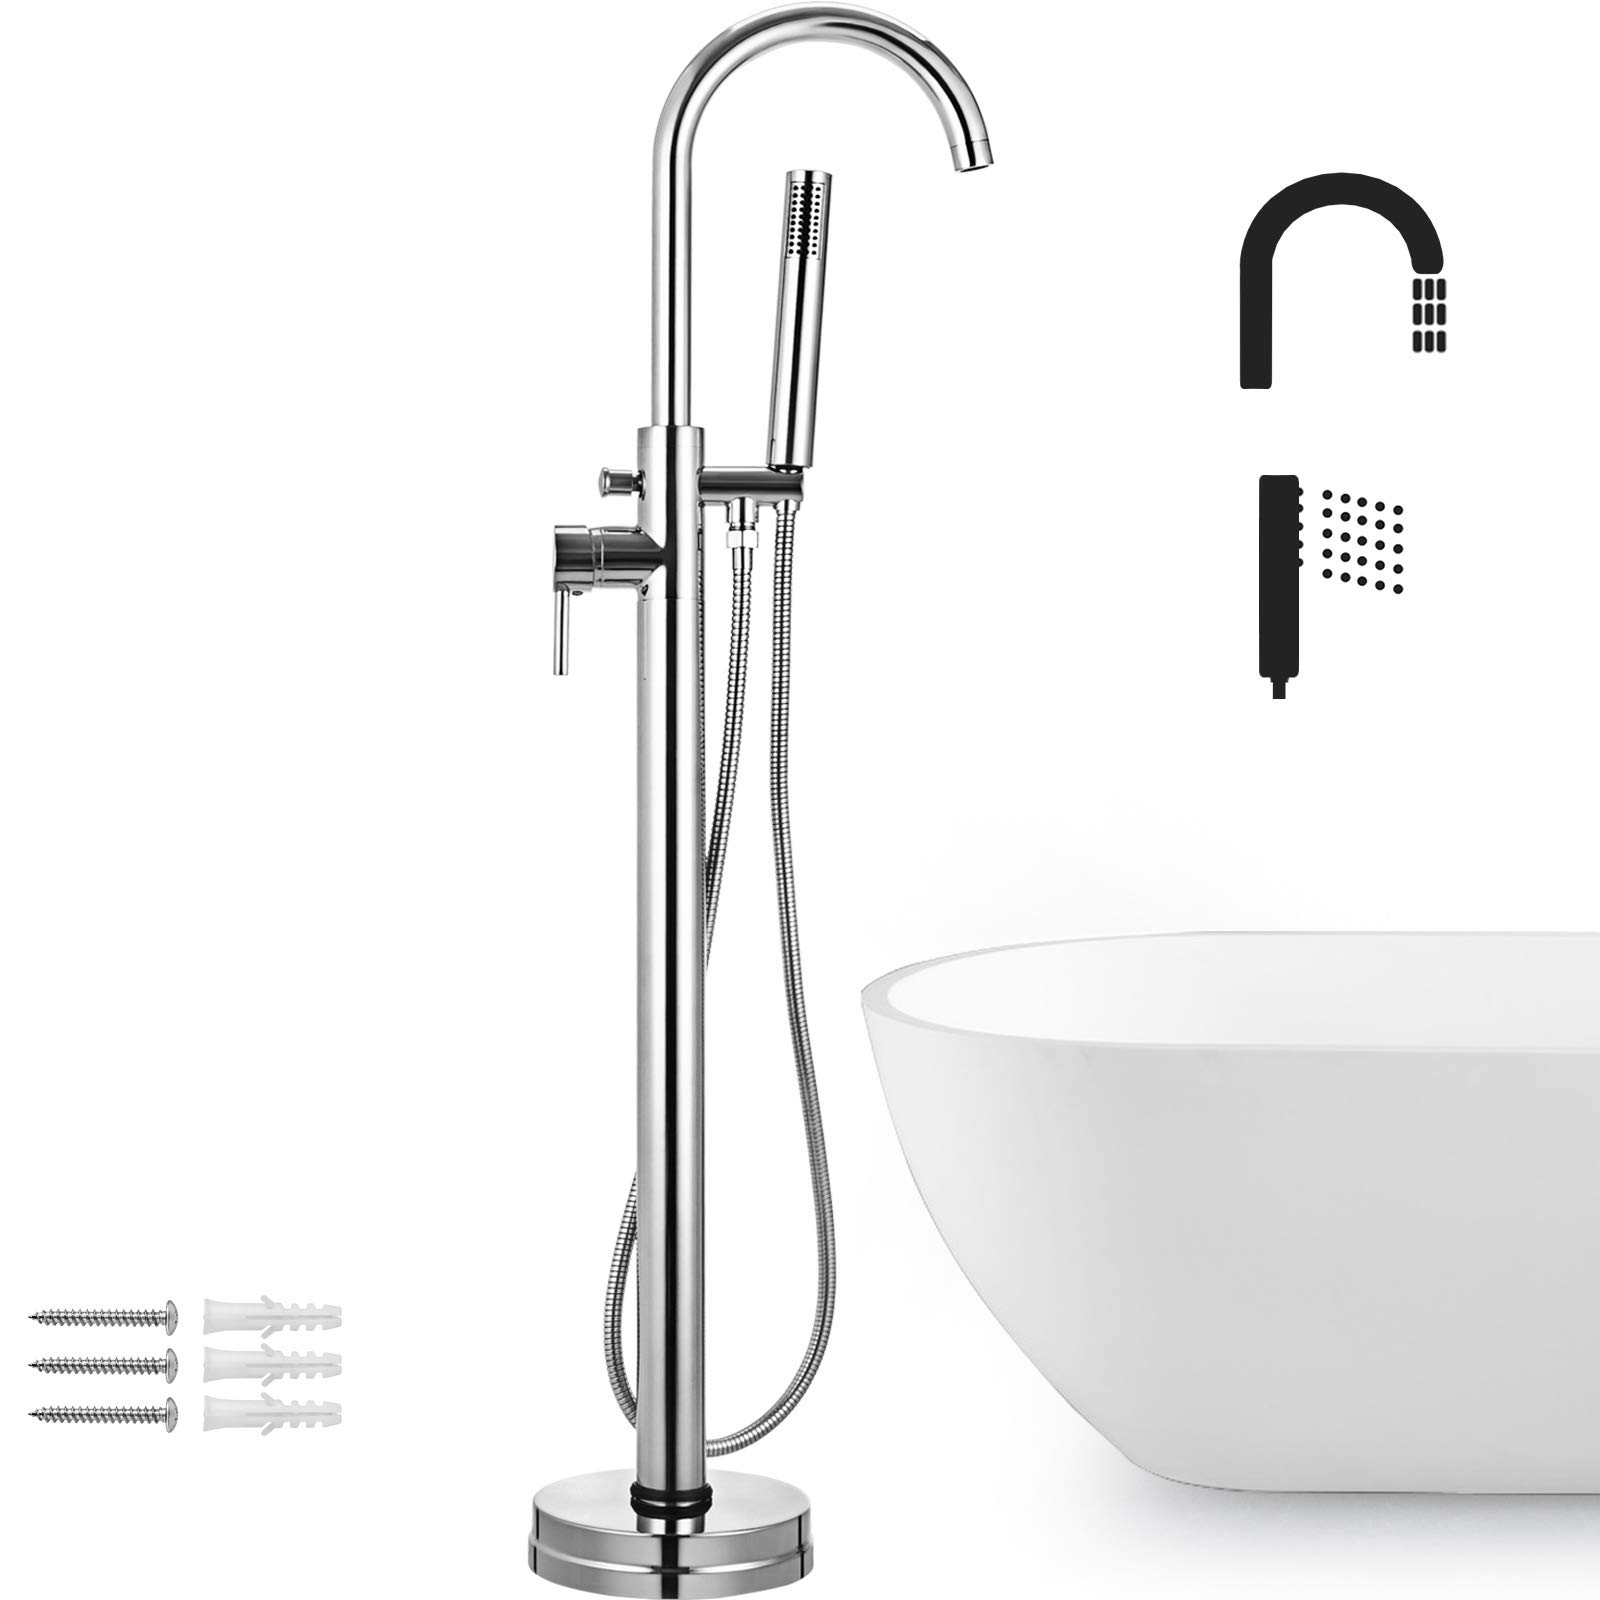 Picture of: Vevor Brass Chrome Plated Free Standing Bathtub Shower Mixer Taps Floor Mounted Tub Shower Faucets With Hand Sprayer Single Handle